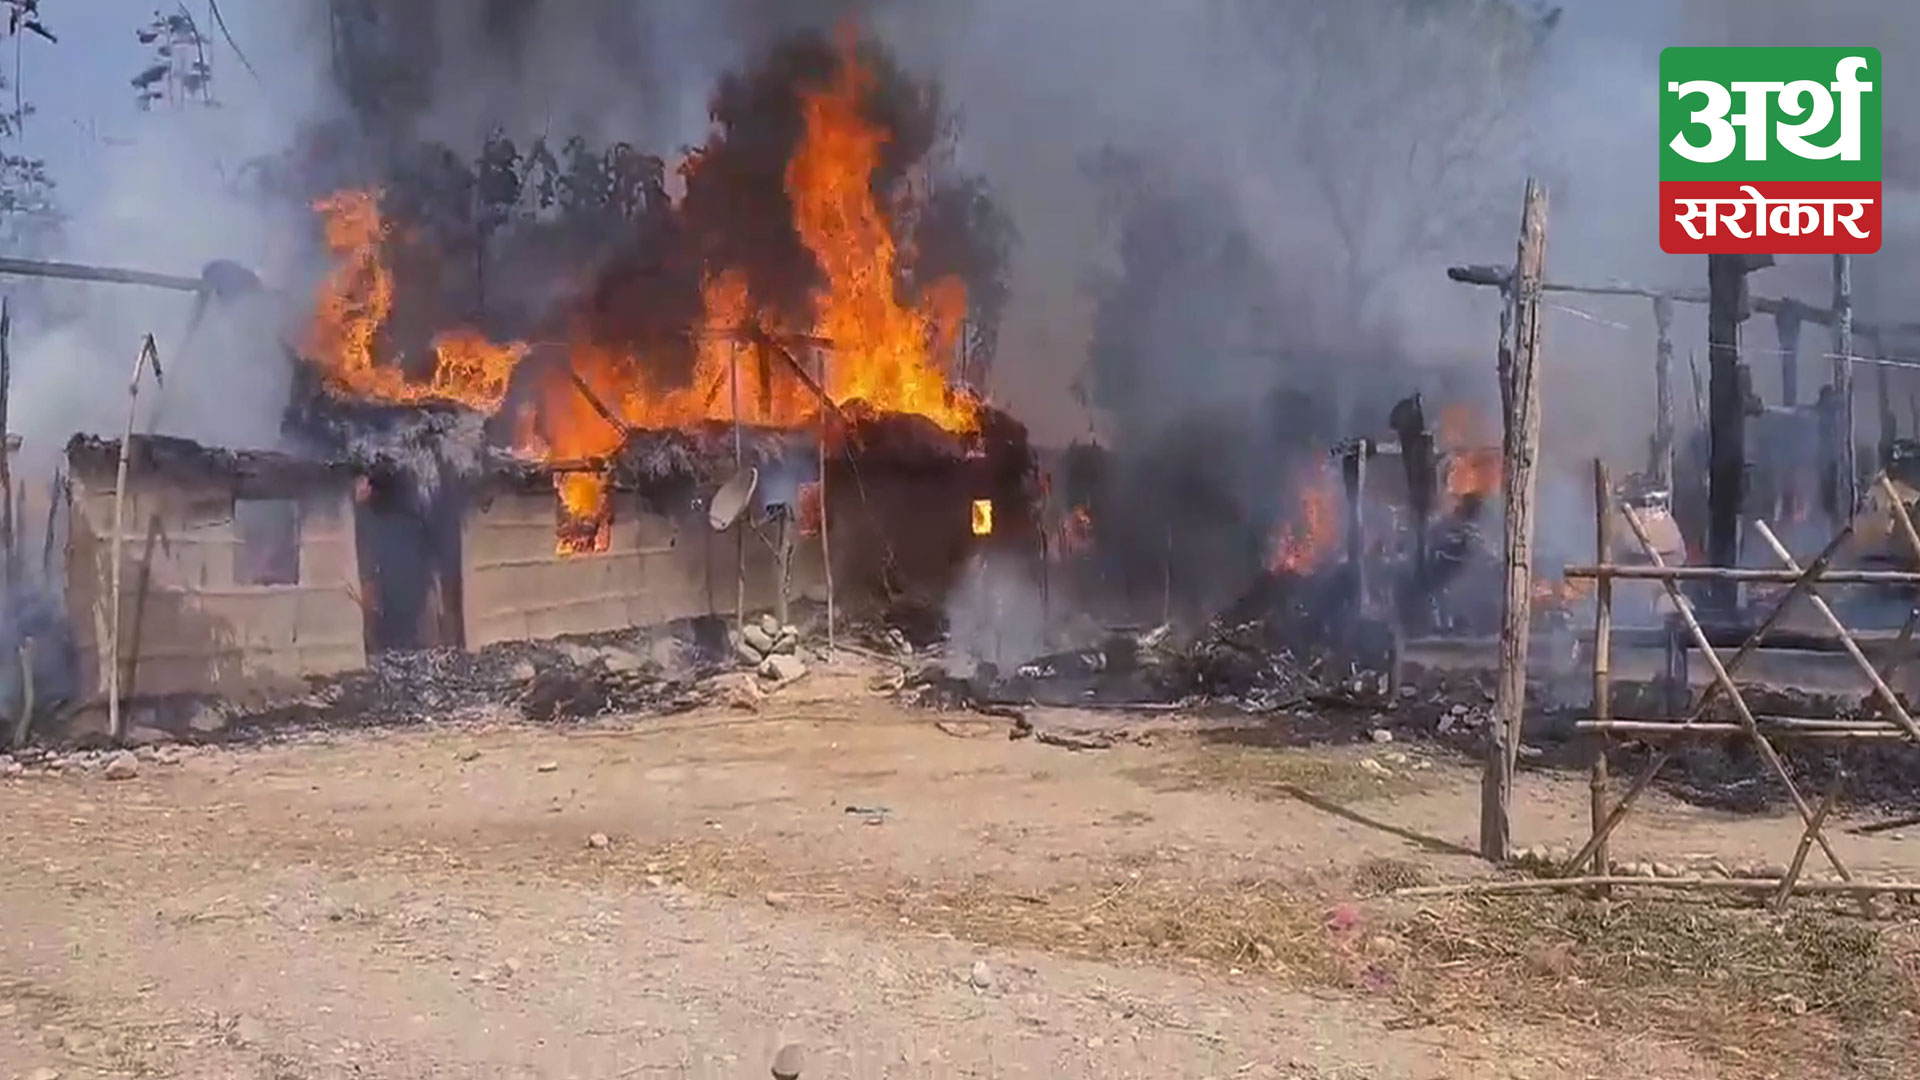 35 houses gutted in fire